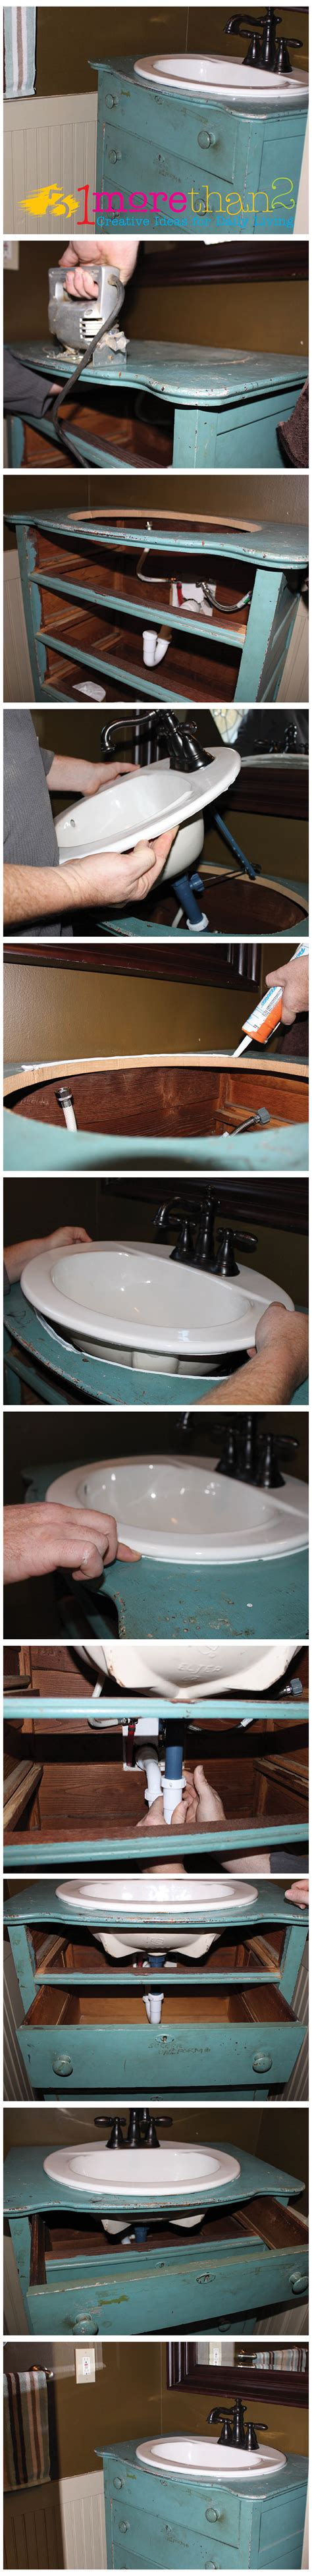 making a bathroom vanity how to build a bathroom step by step woodworking building bathroom shelves ideas